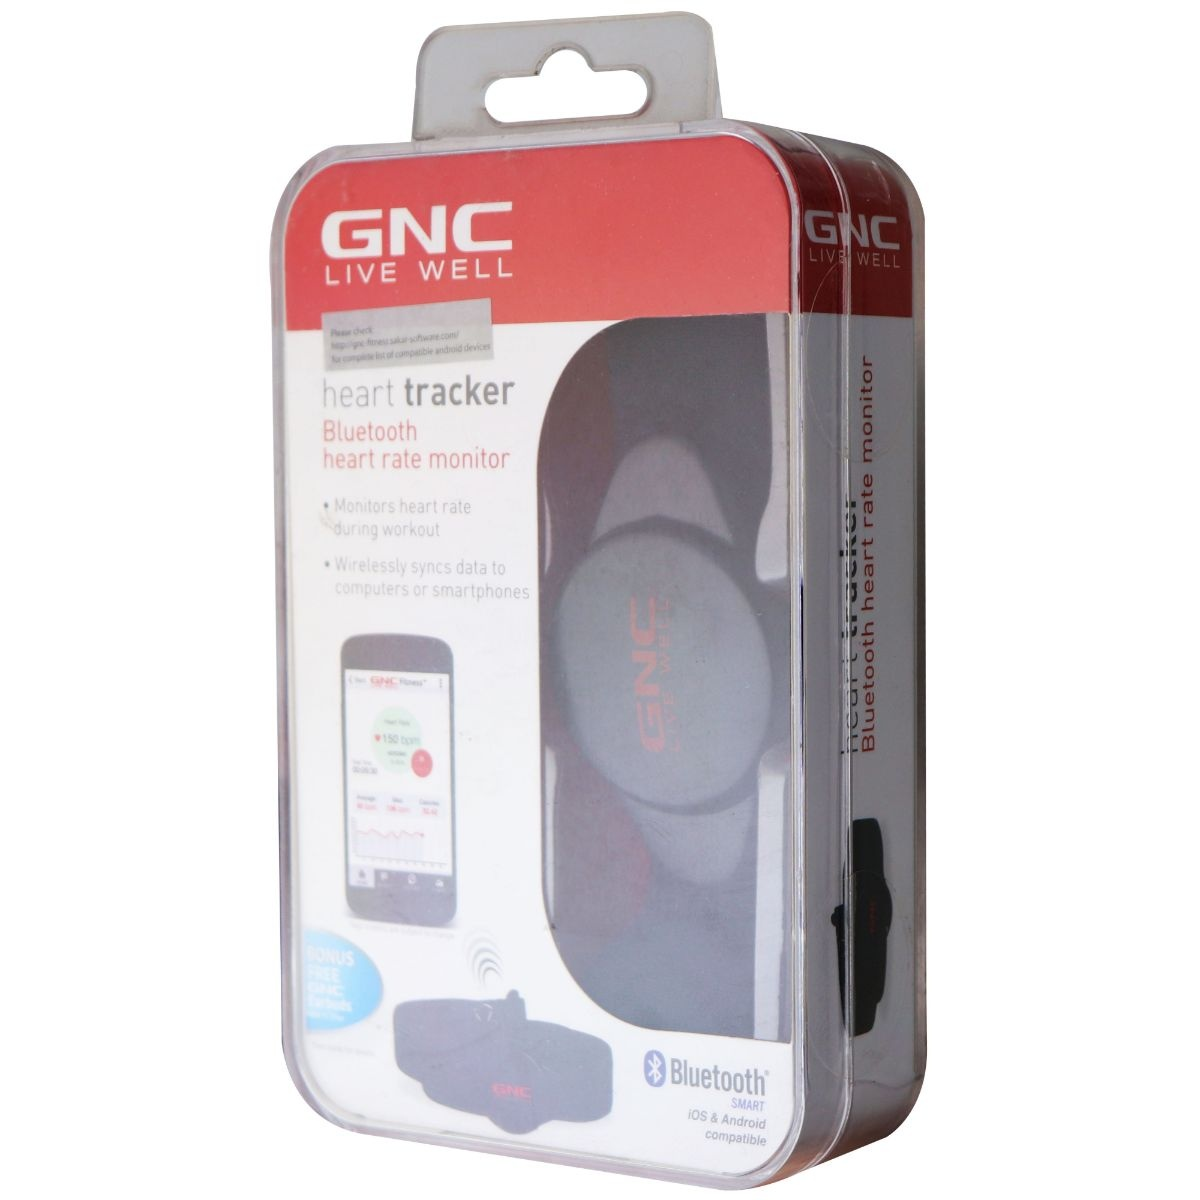 GNC Bluetooth Heart Rate Monitor with Strap - Black (Model: GNC GB-8561)